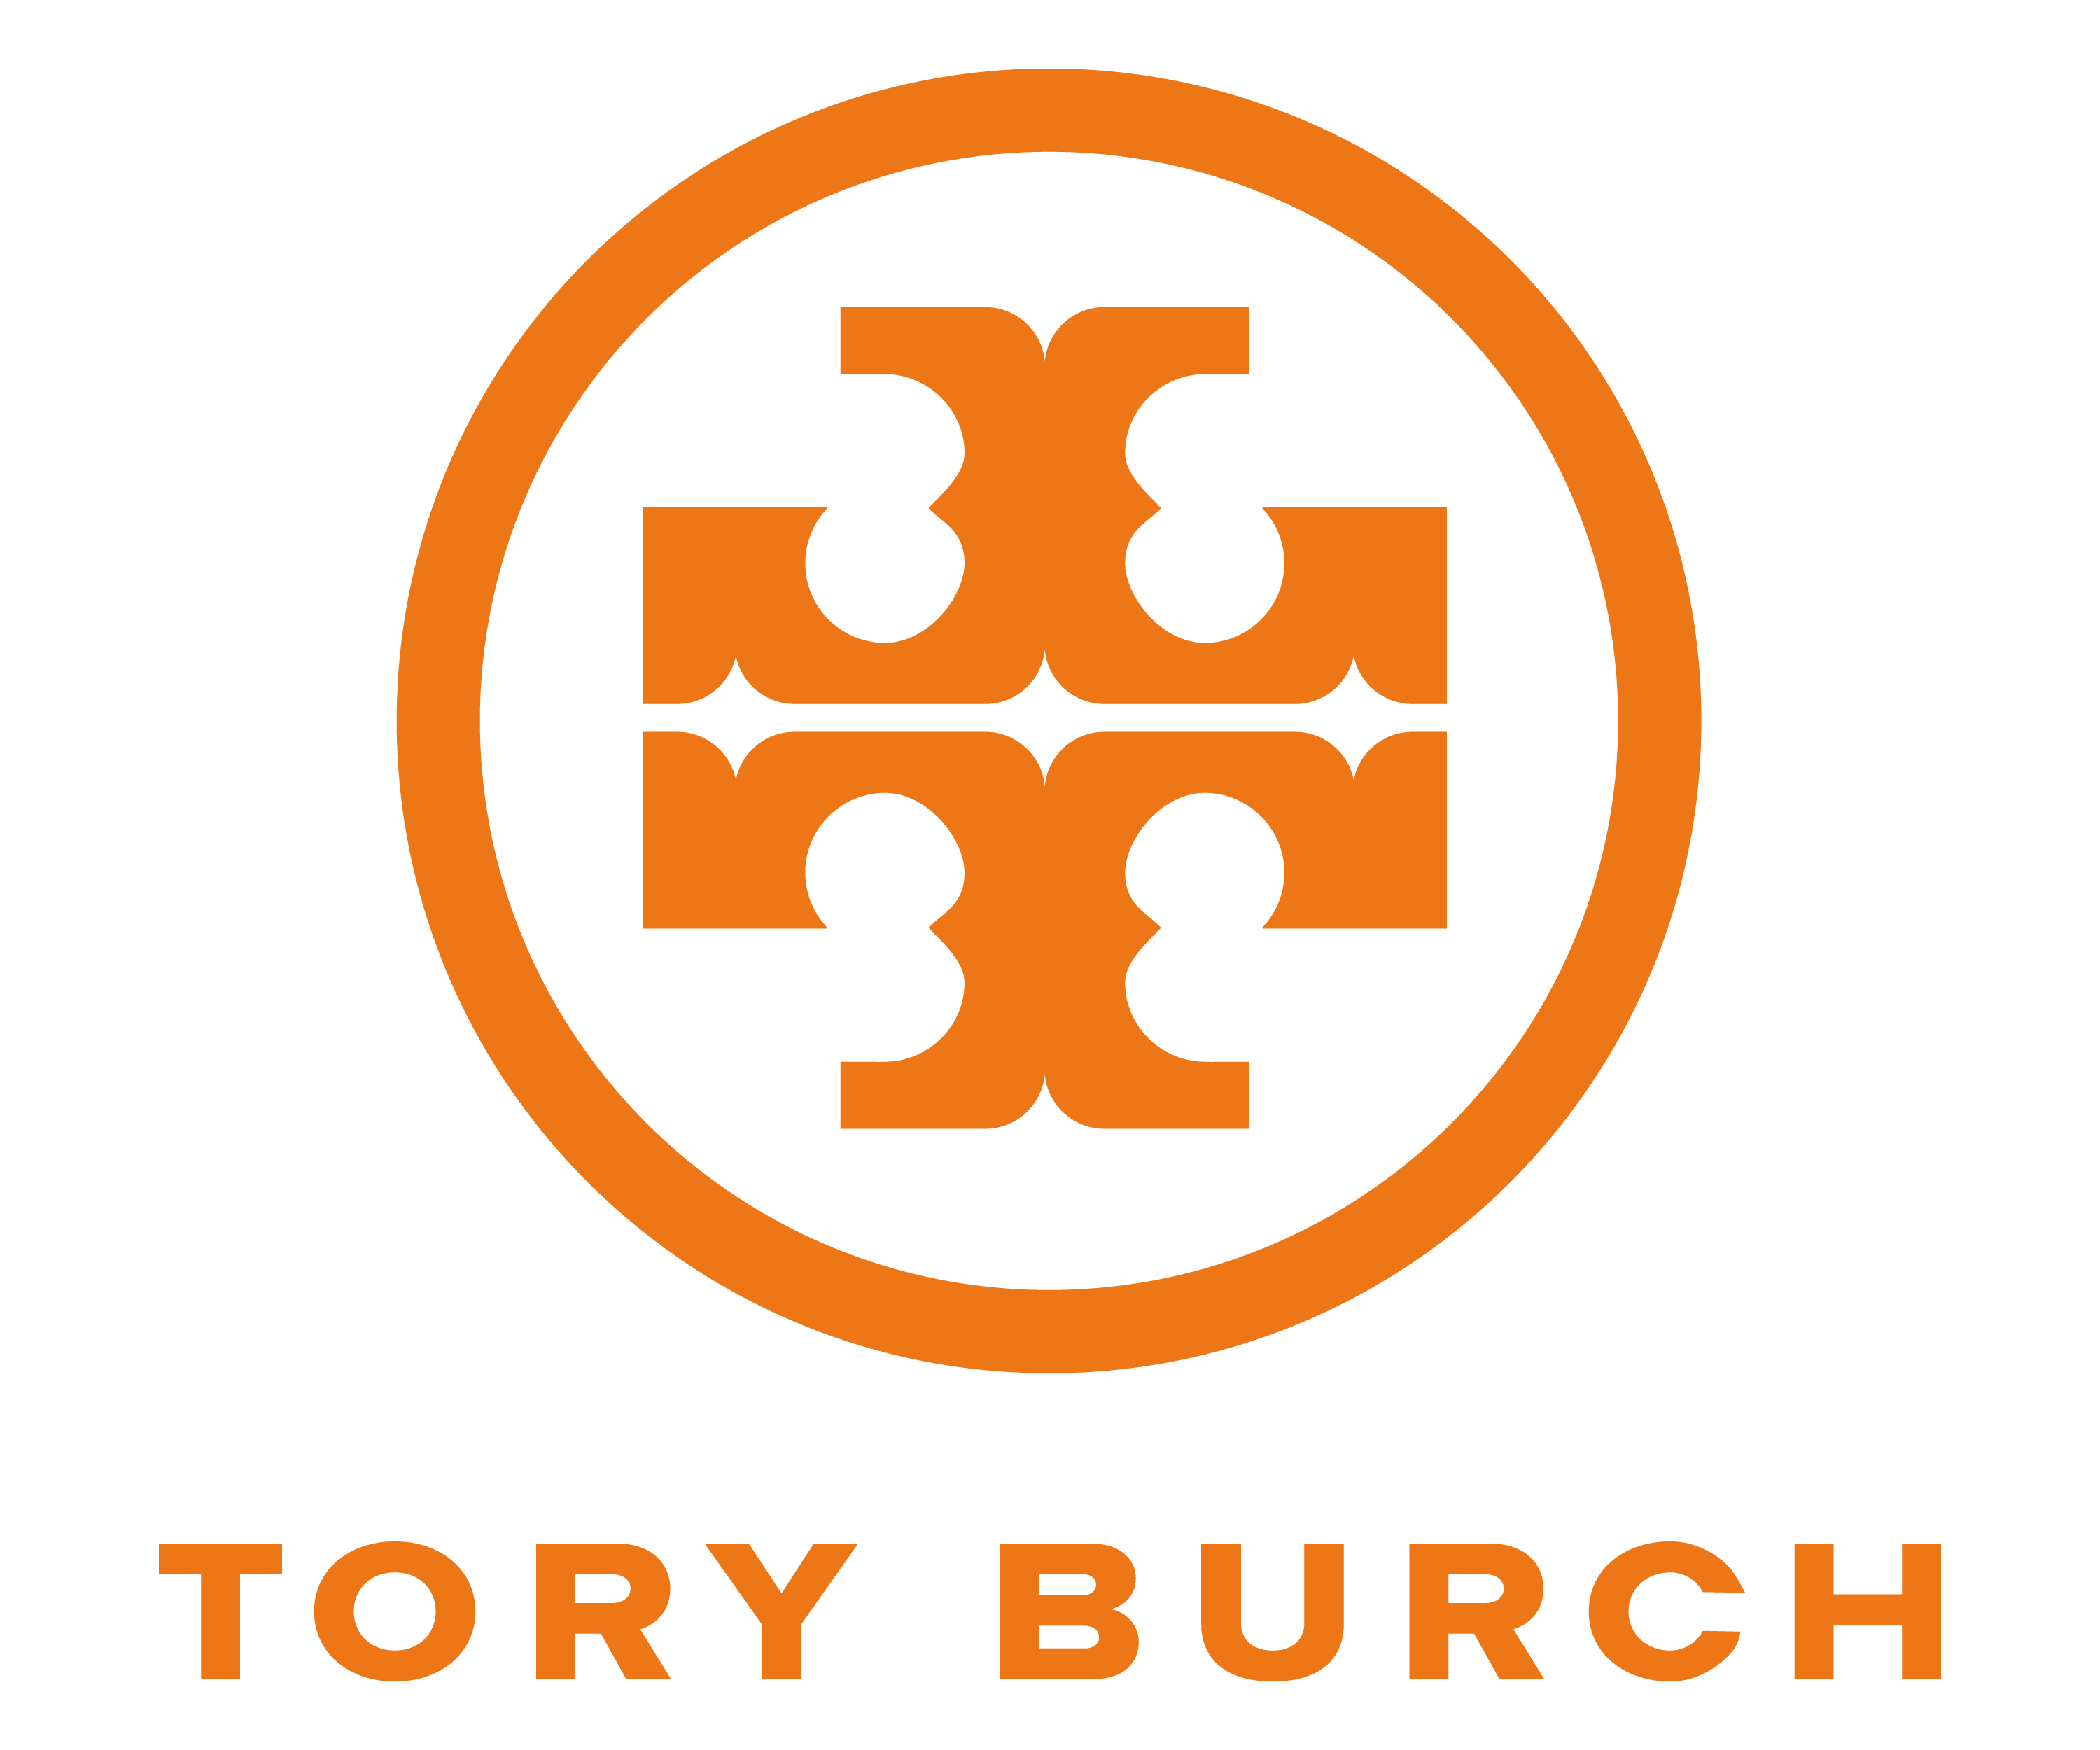 tory burch logo  tory burch symbol  meaning  history and education for interior designer in canada education for interior designer in canada